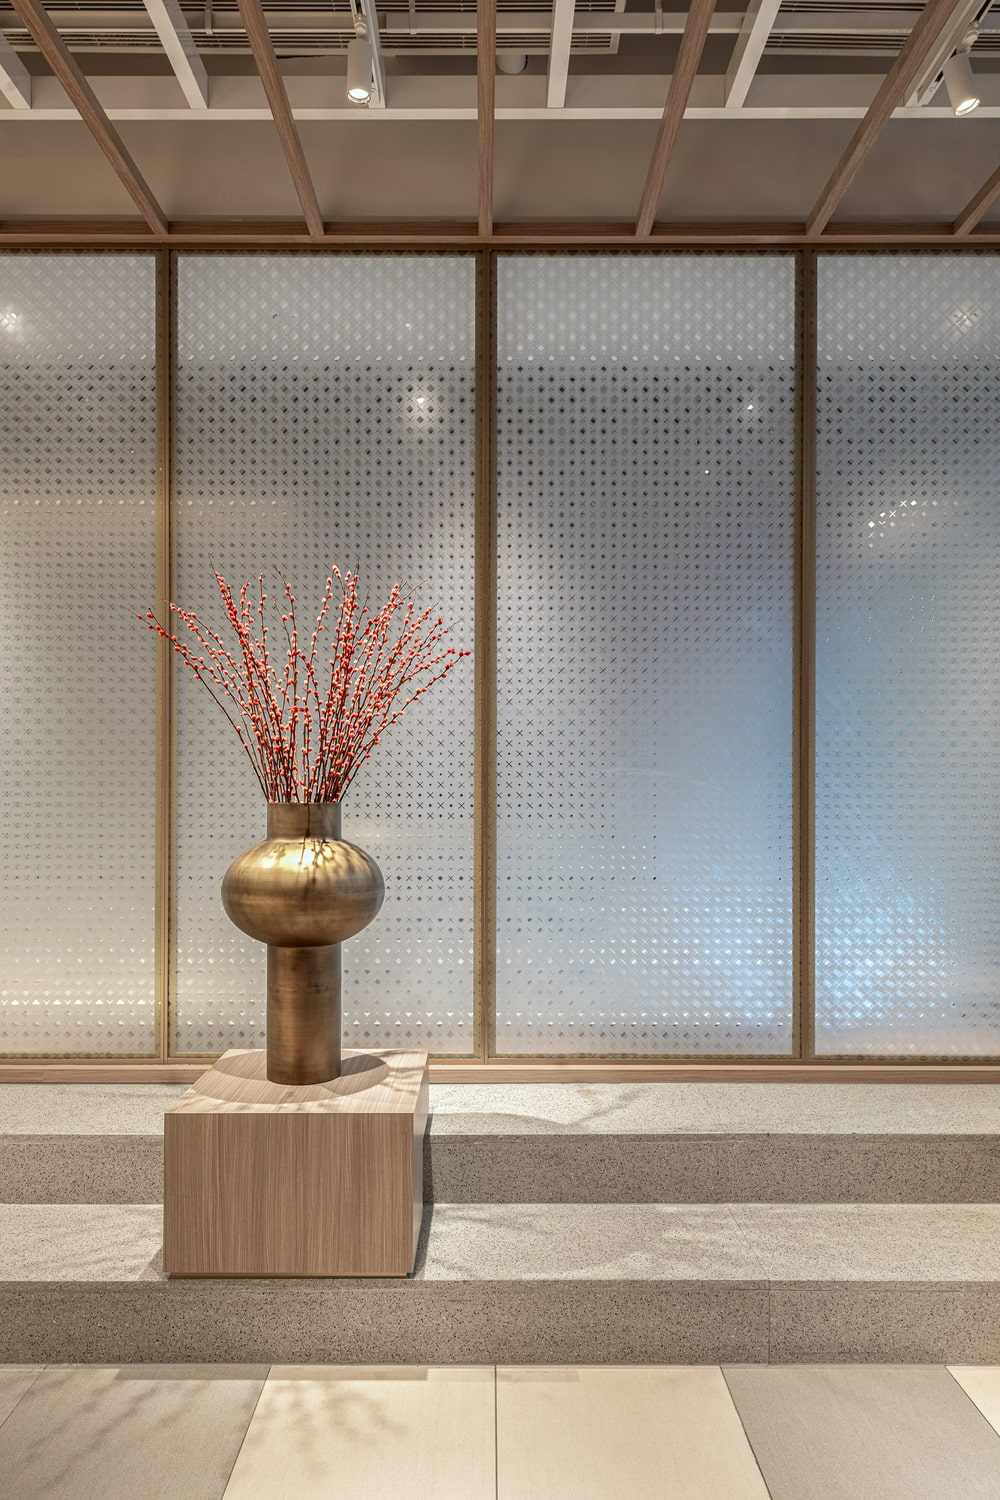 This is a close look at the swiveling frosted glass walls adorned with a wooden pedestal topped with a flower vase display.